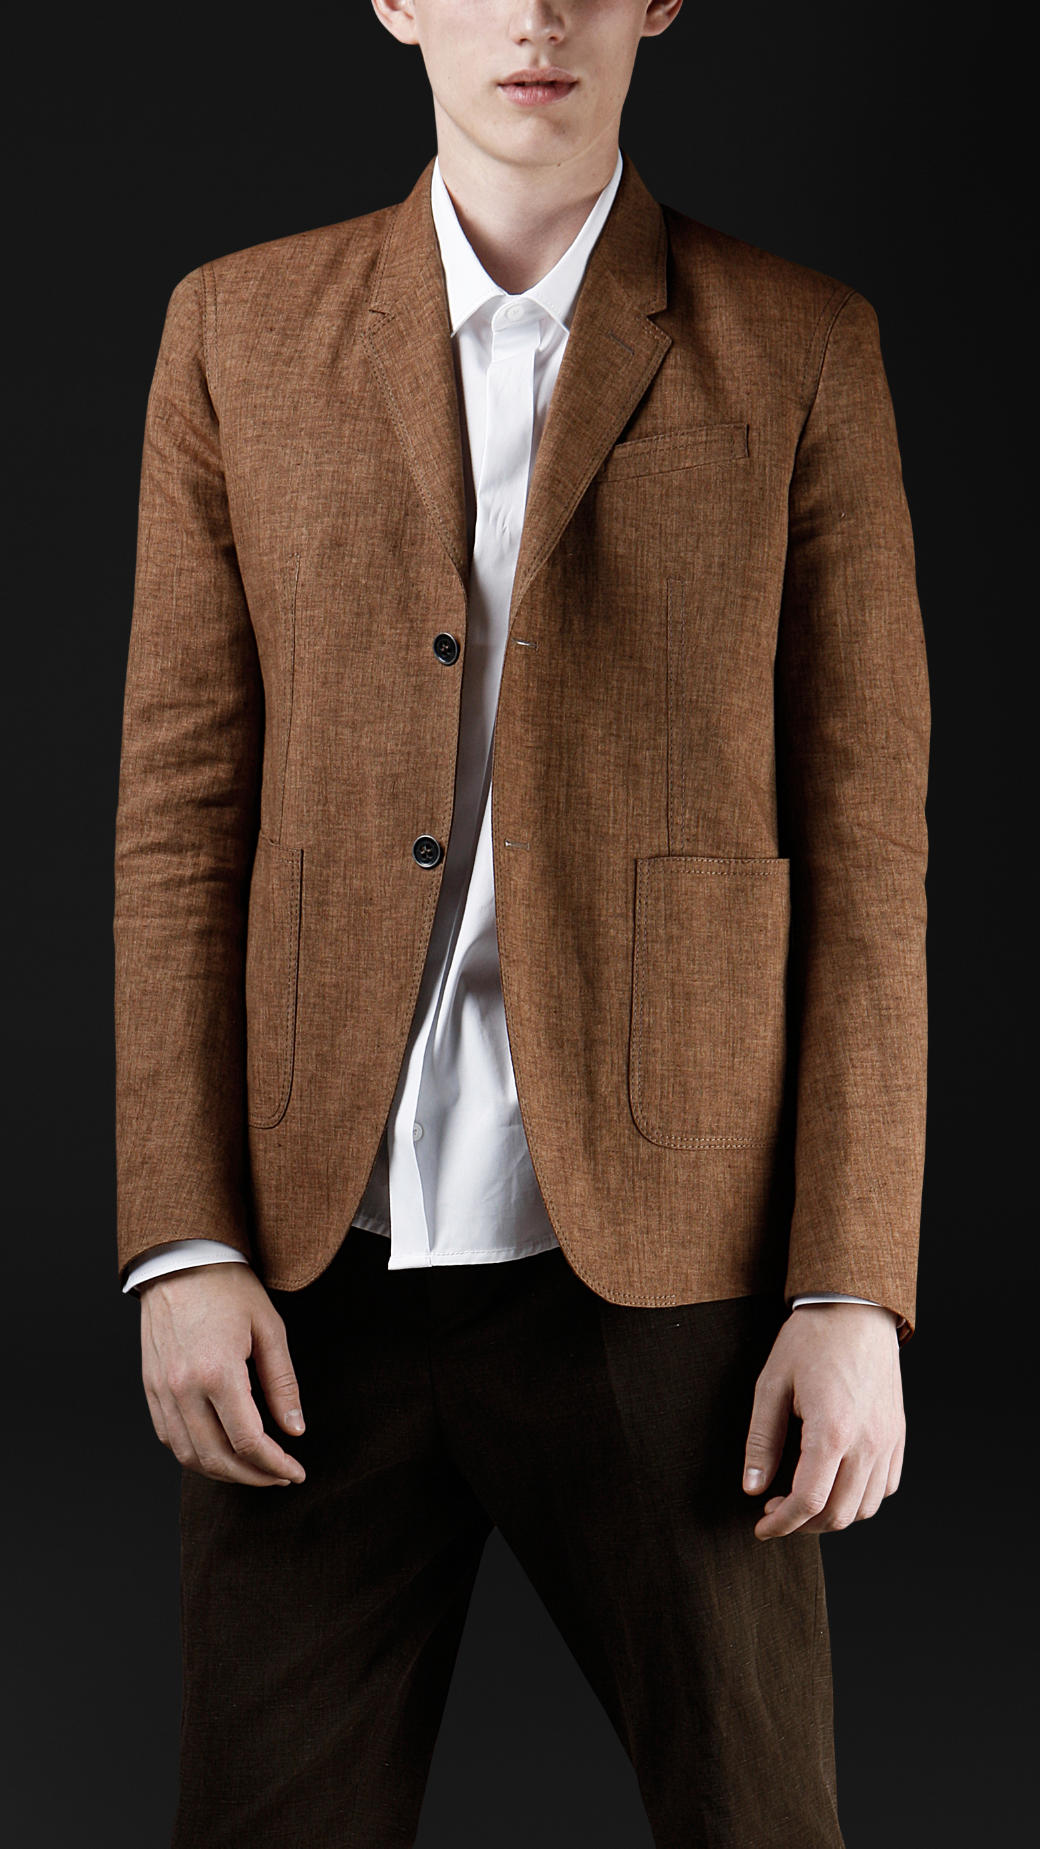 dc6b722a2e7c Burberry Prorsum Tailored Workwear Linen Jacket in Brown for Men - Lyst